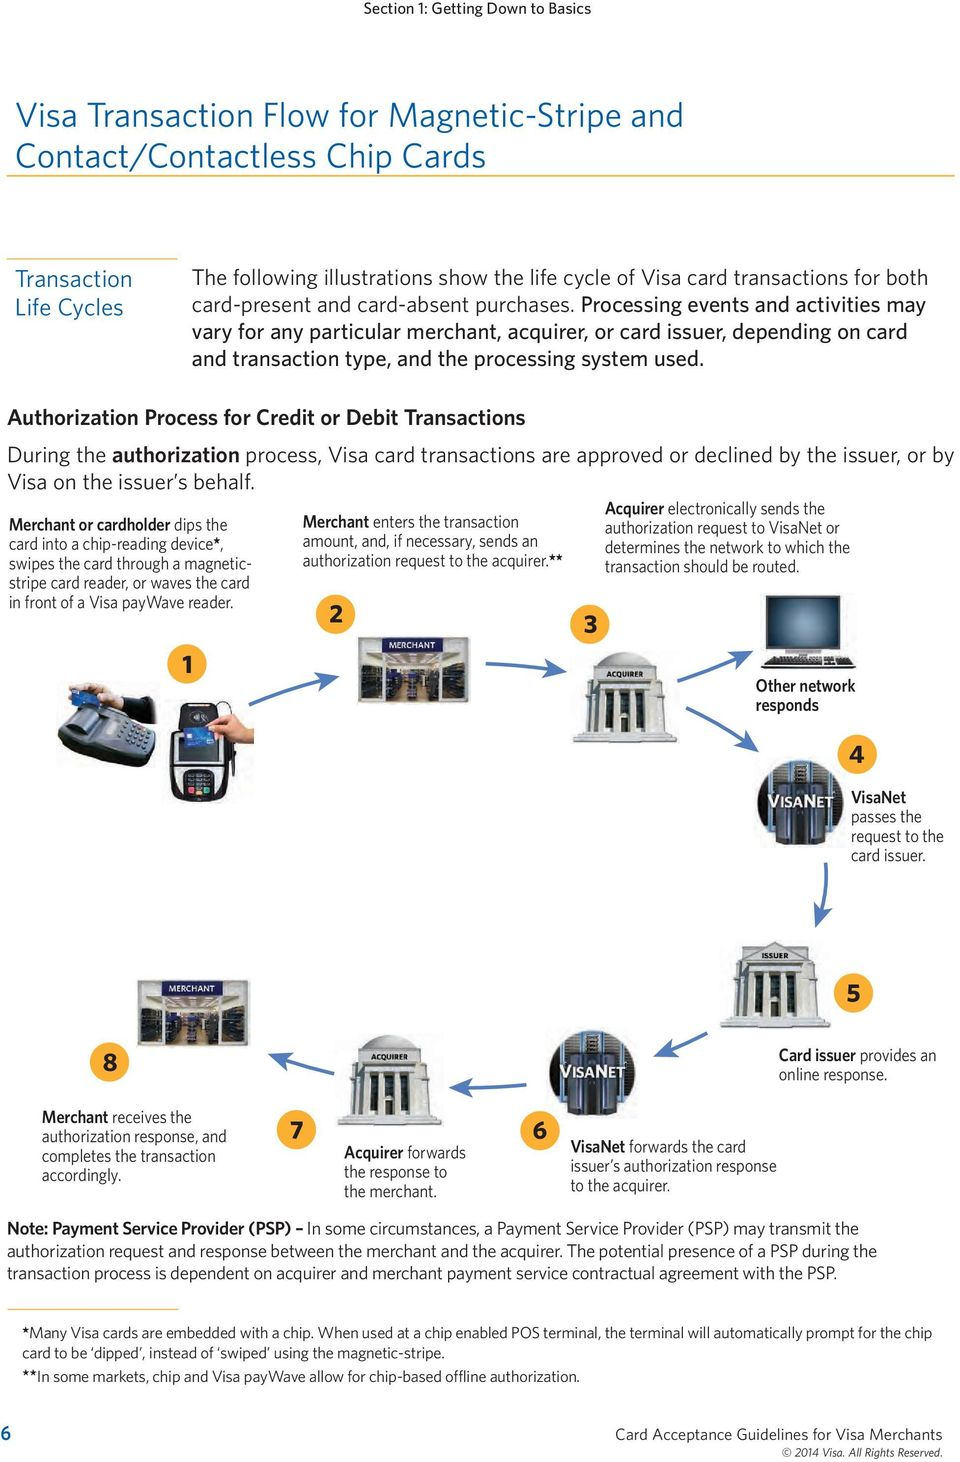 Processing events and activities may vary for any particular merchant, acquirer, or card issuer, depending on card and transaction type, and the processing system used.